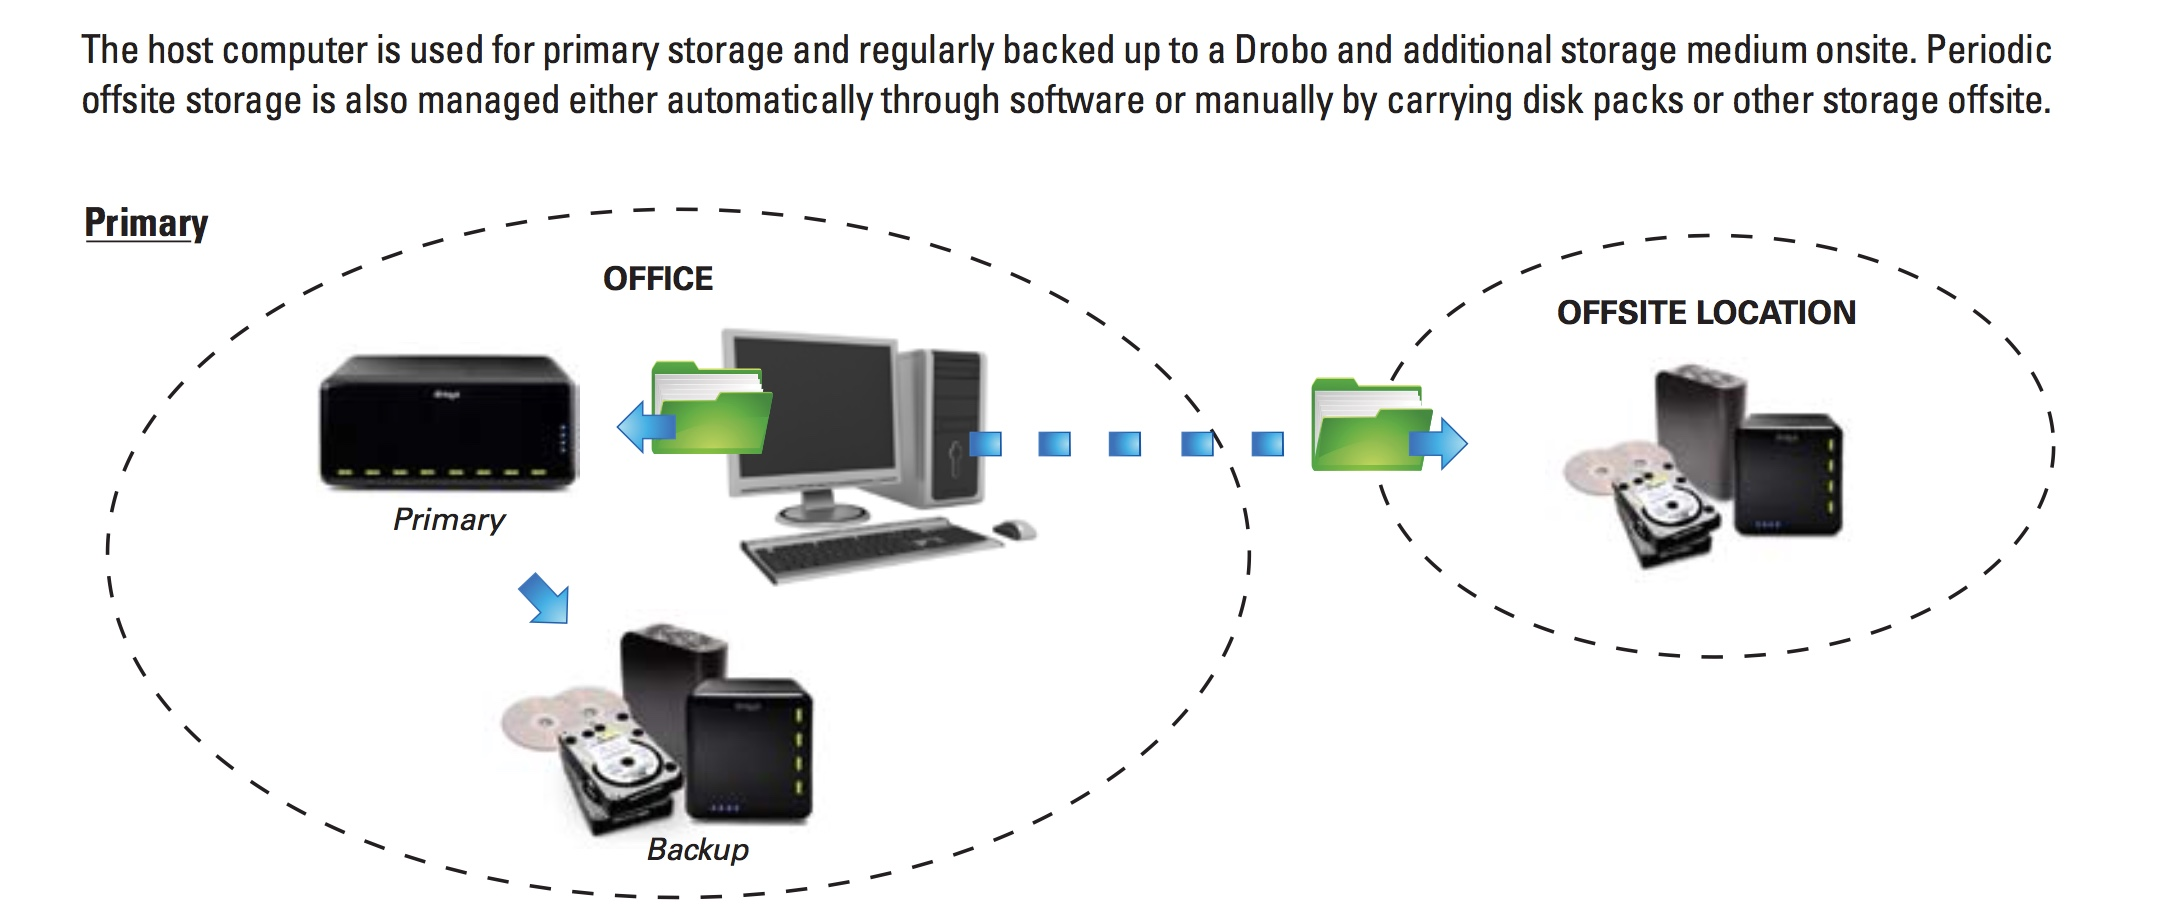 What Best Practices should I follow when using my Drobo ?